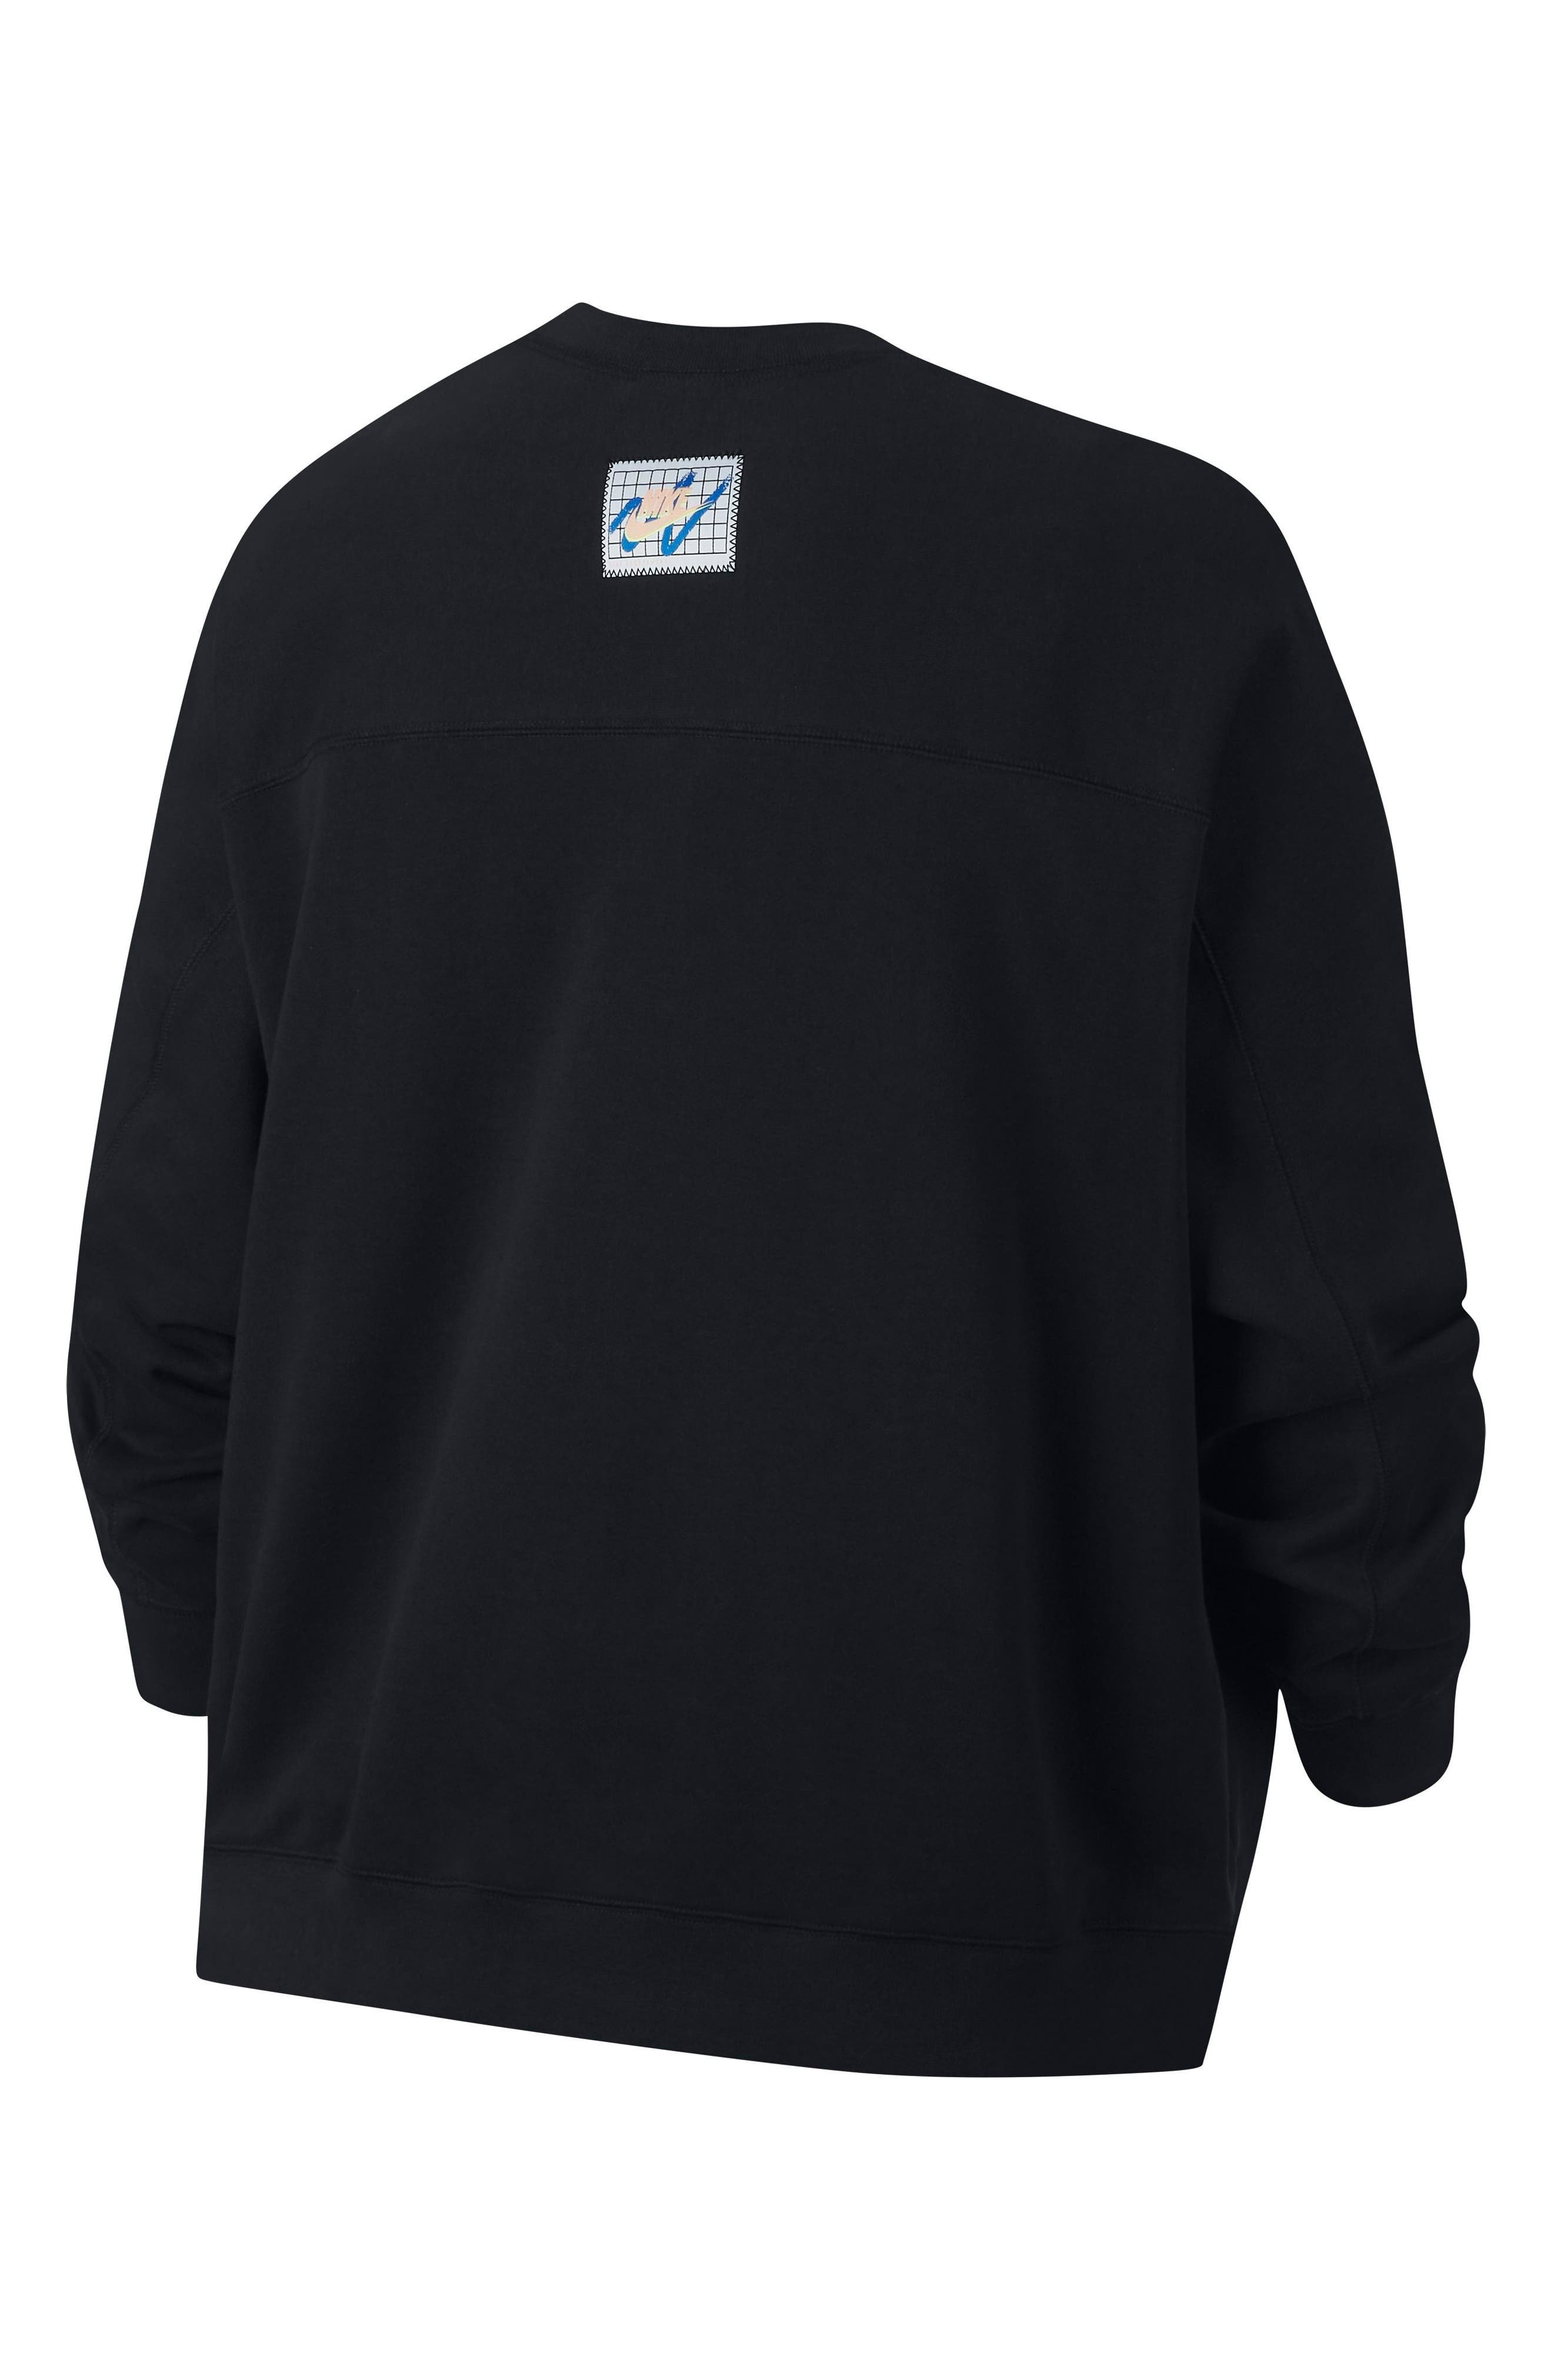 Sportswear Archive Sweatshirt,                             Alternate thumbnail 8, color,                             010